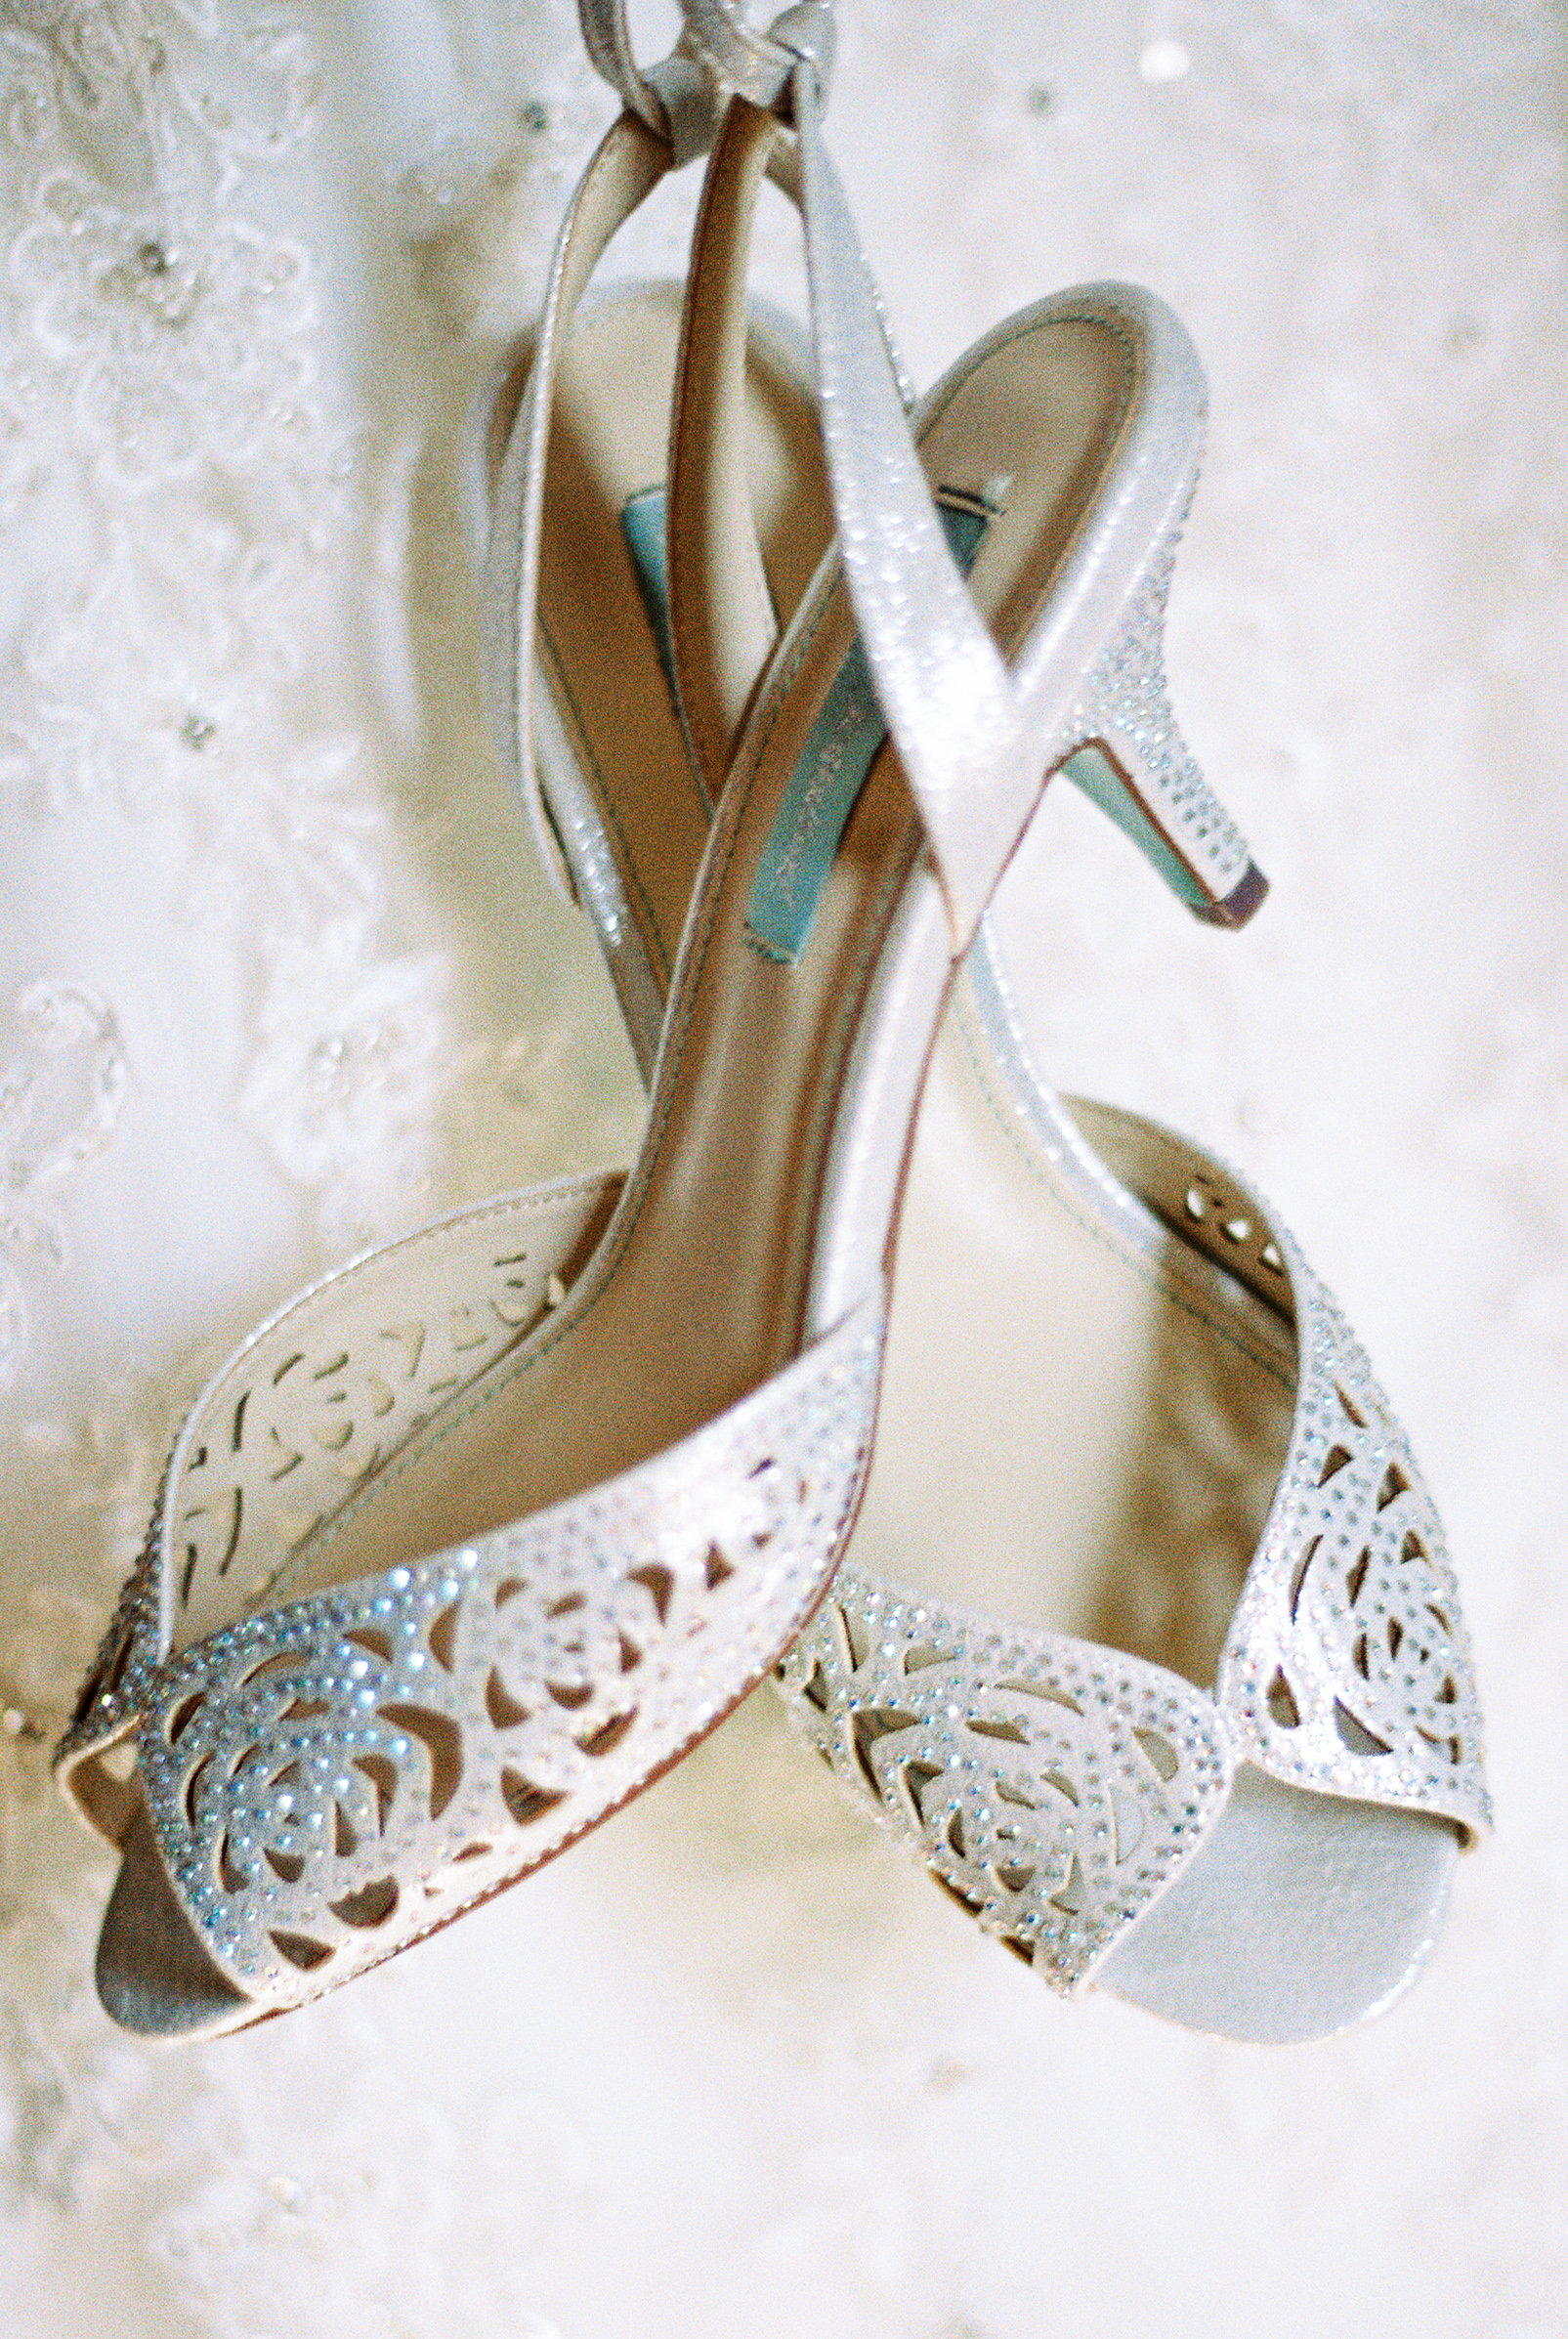 lake-mary-events-center-Florida-wedding-photos-shoes